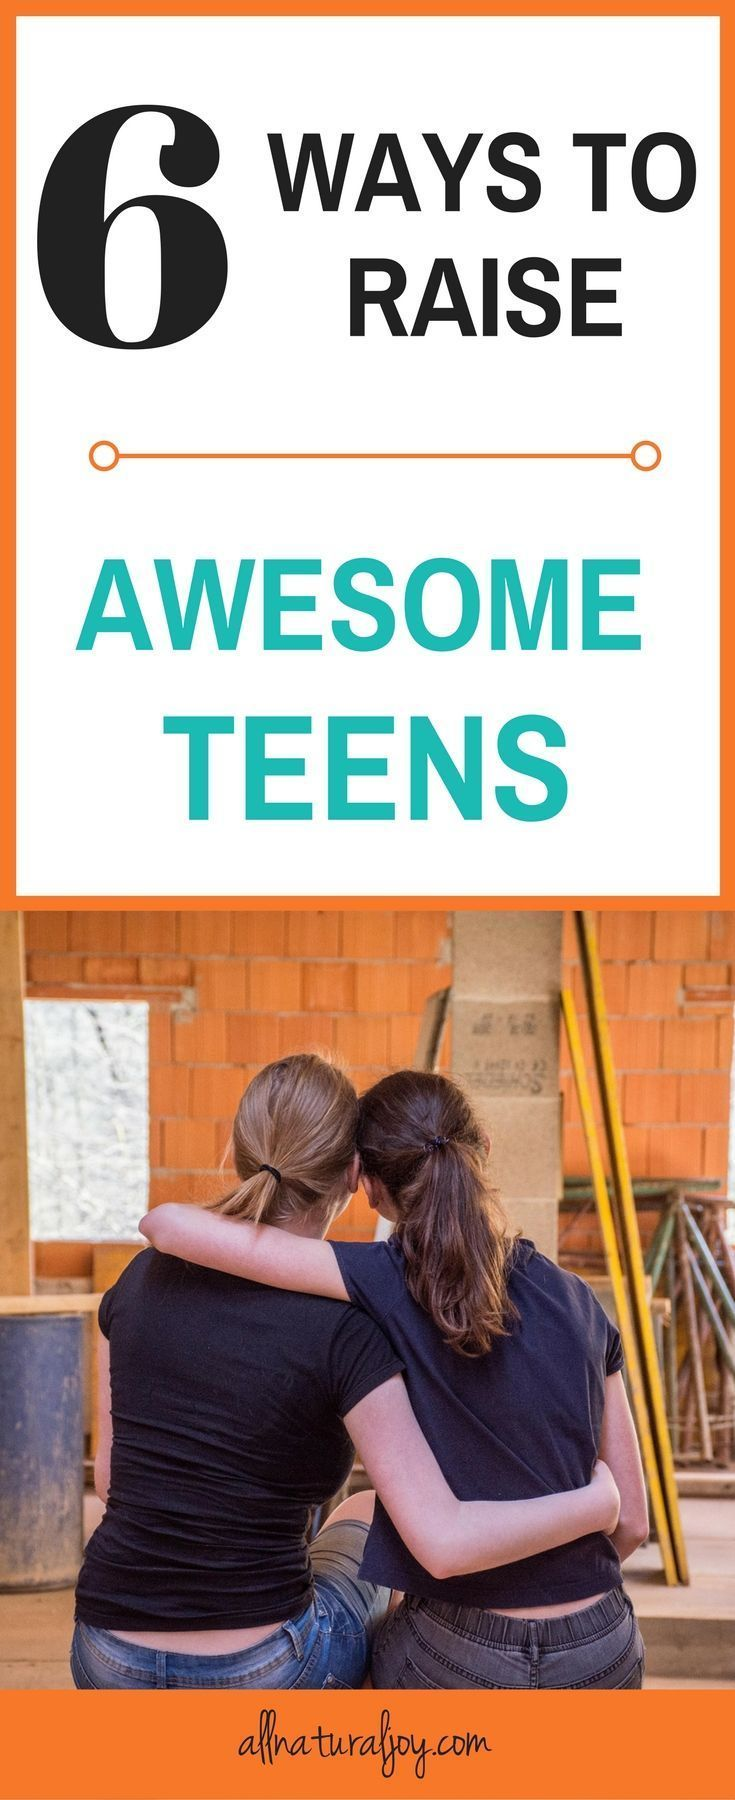 Teenagers are AWESOME! I love raising awesome teens! These are great idea to connect with your teens and help them to become more godly